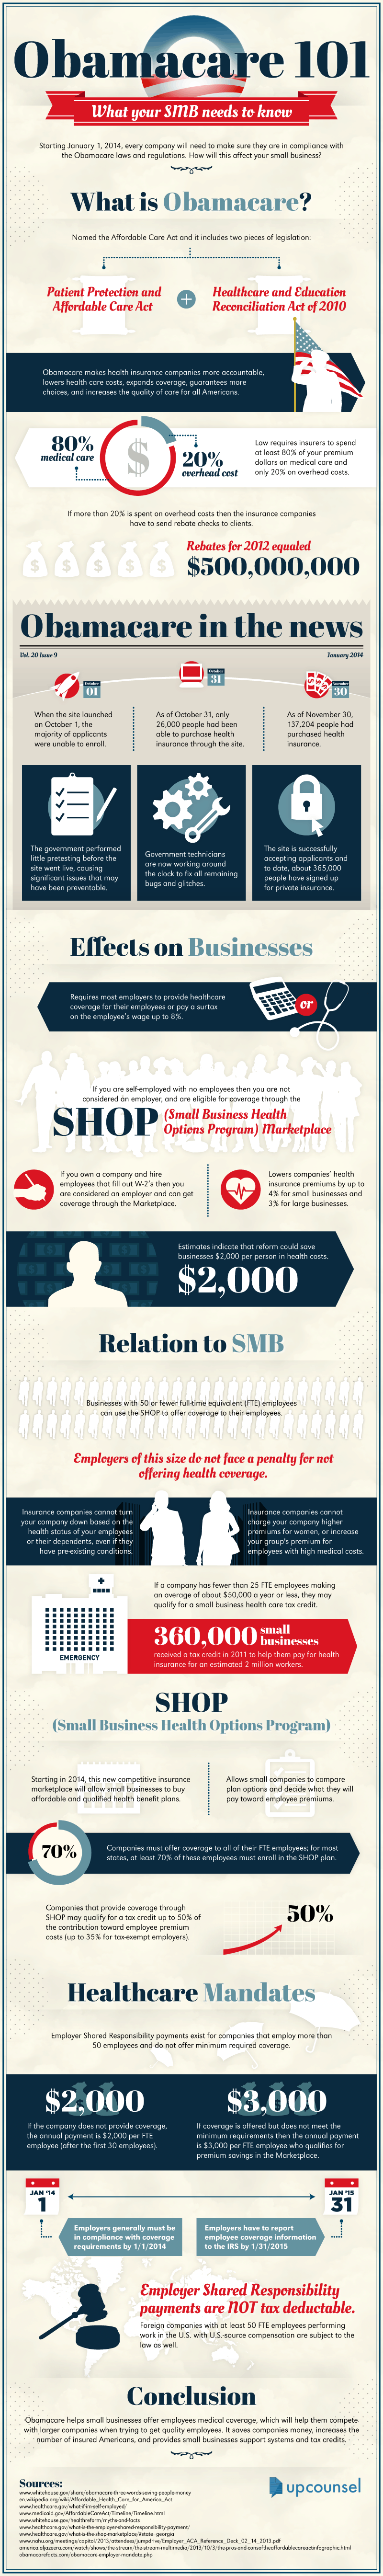 Obamacare 101: What Your Smb Needs To Know Infographic